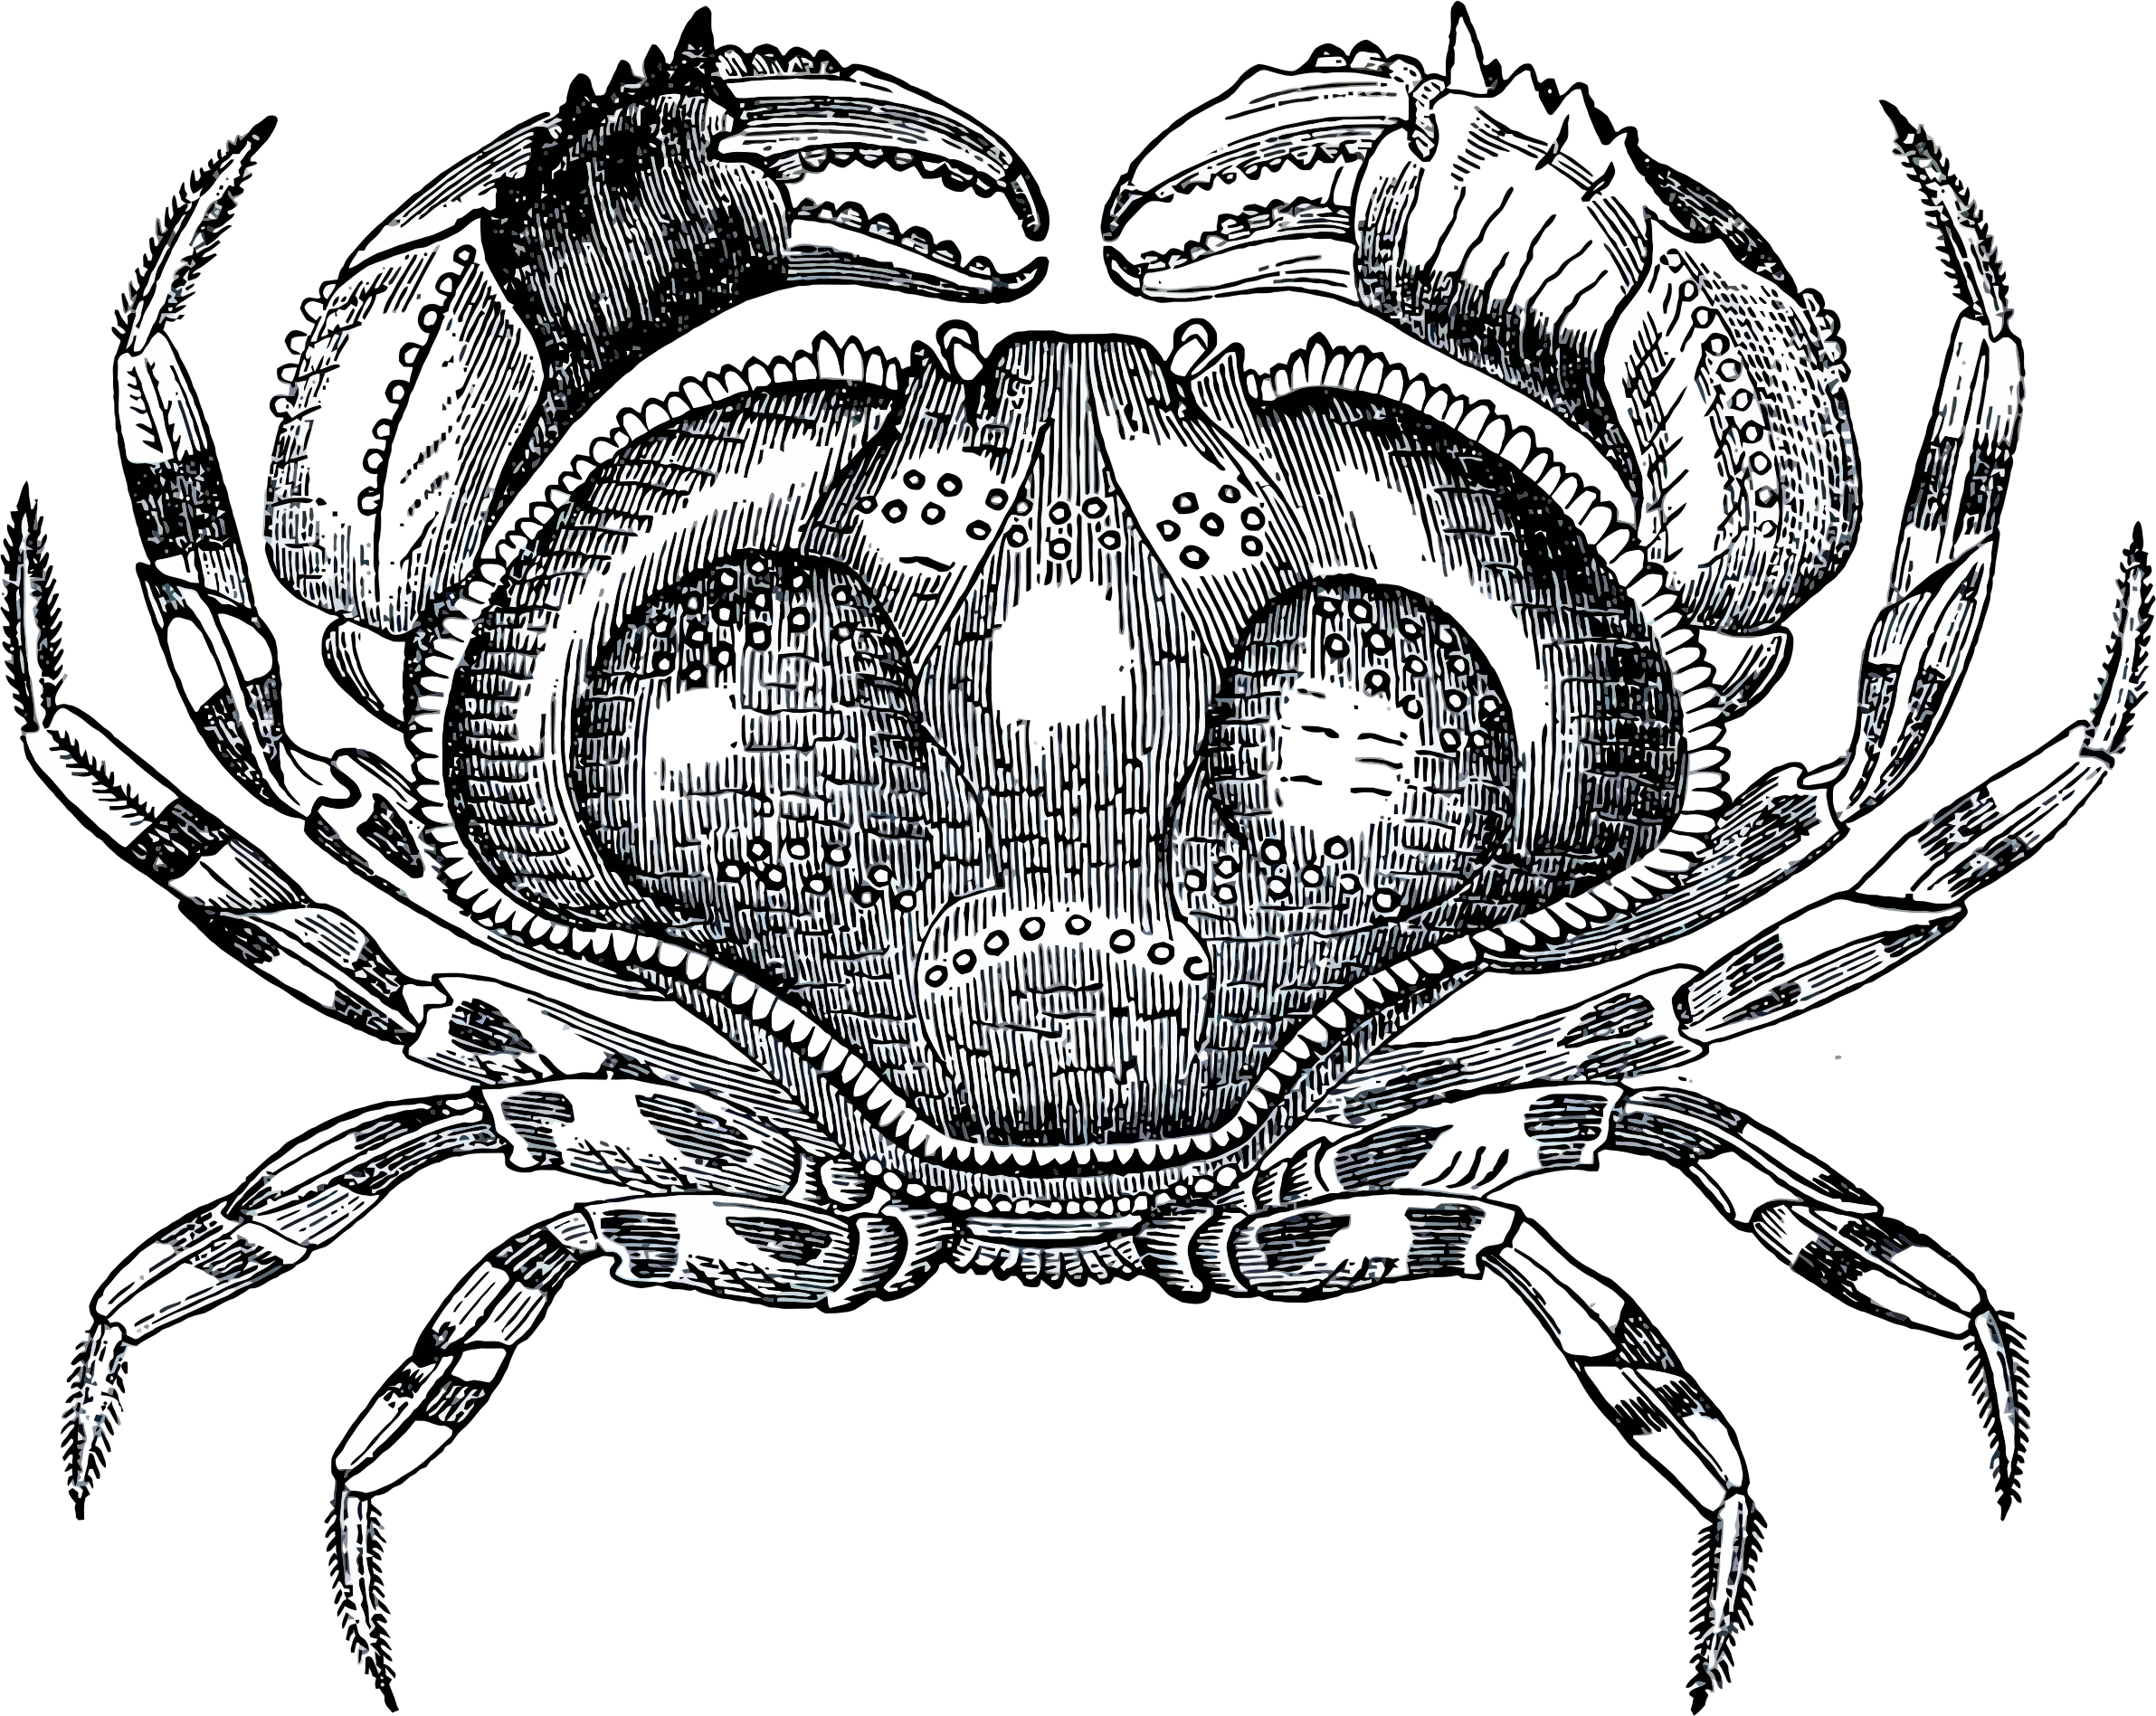 Grayscale Crab by GDJ